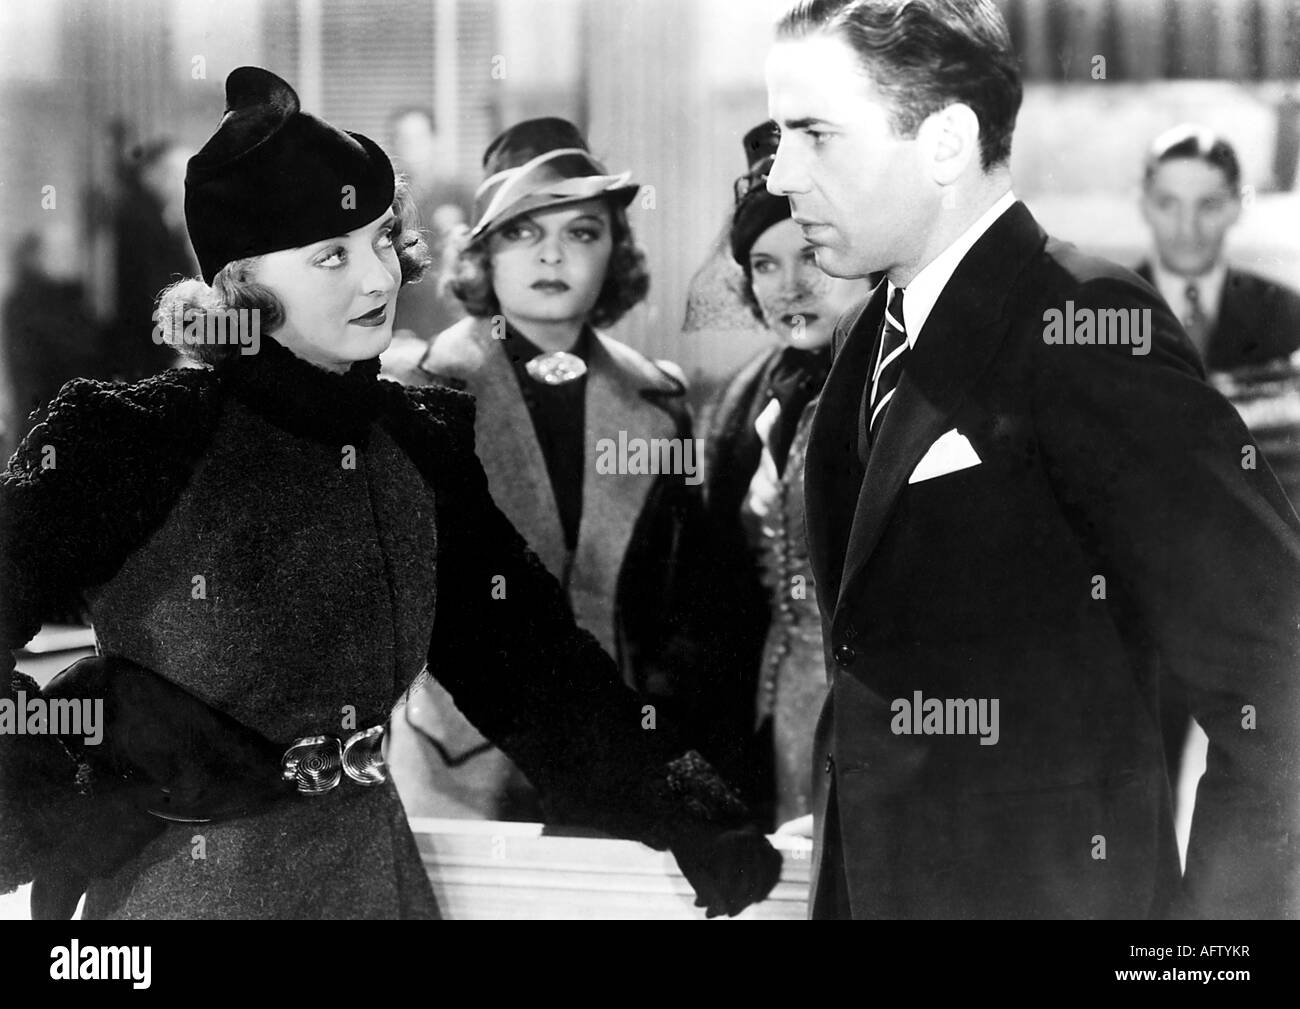 MARKED WOMAN - 1937 Warner film with Bette Davis and Humphrey Bogart - Stock Image